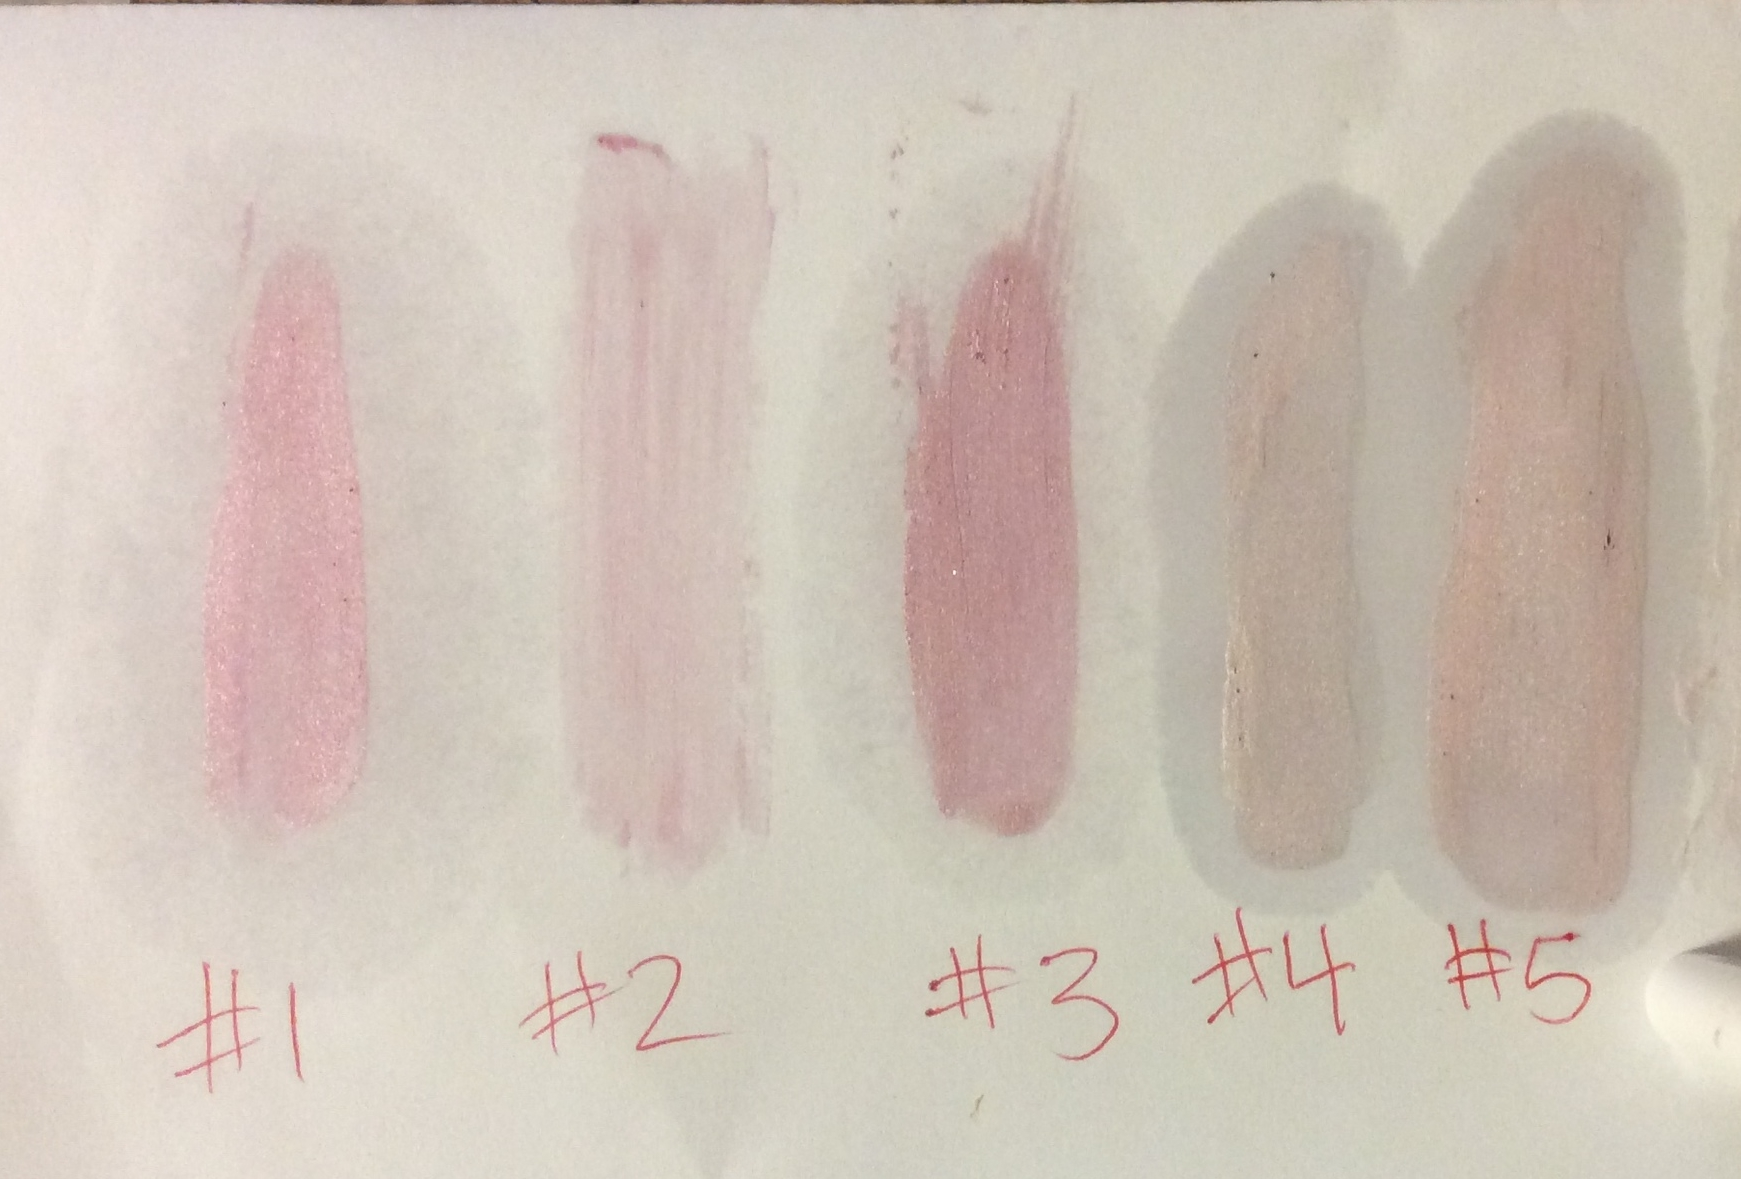 Too pink, not enough shimmer, way too pink, a little too light, but #5 is Just RIGHT!